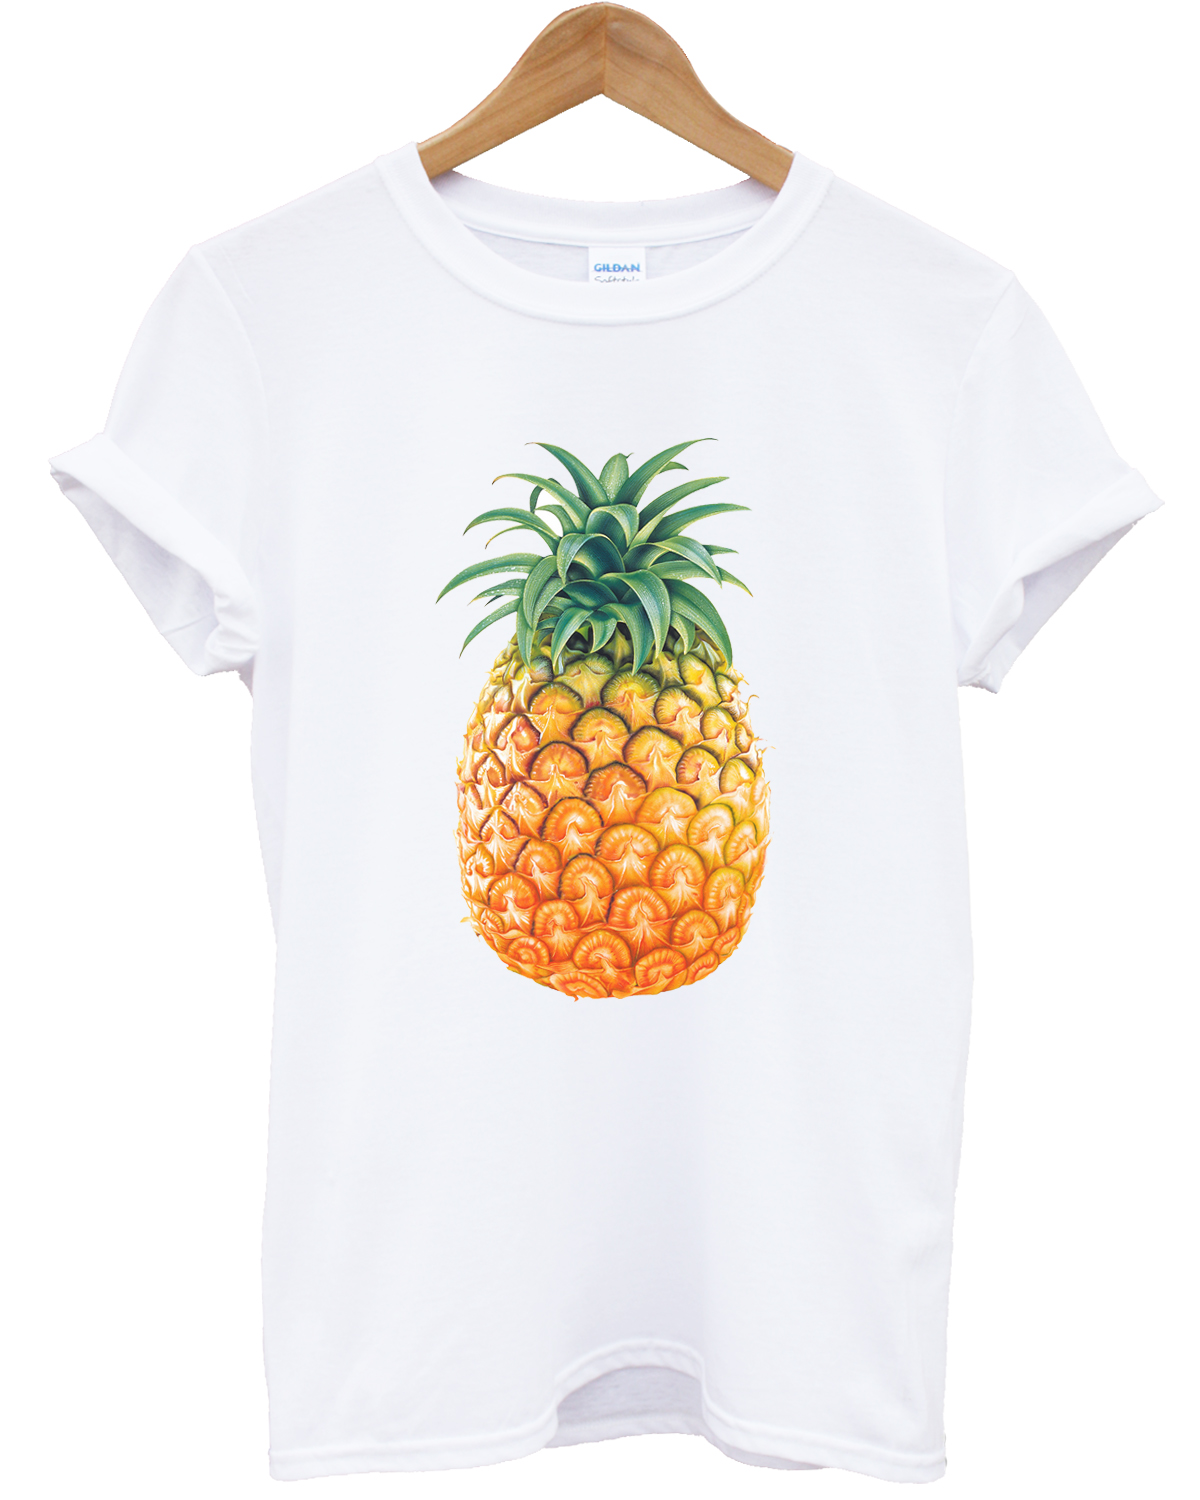 Cover your body with amazing Pineapple t-shirts from Zazzle. Search for your new favorite shirt from thousands of great designs!